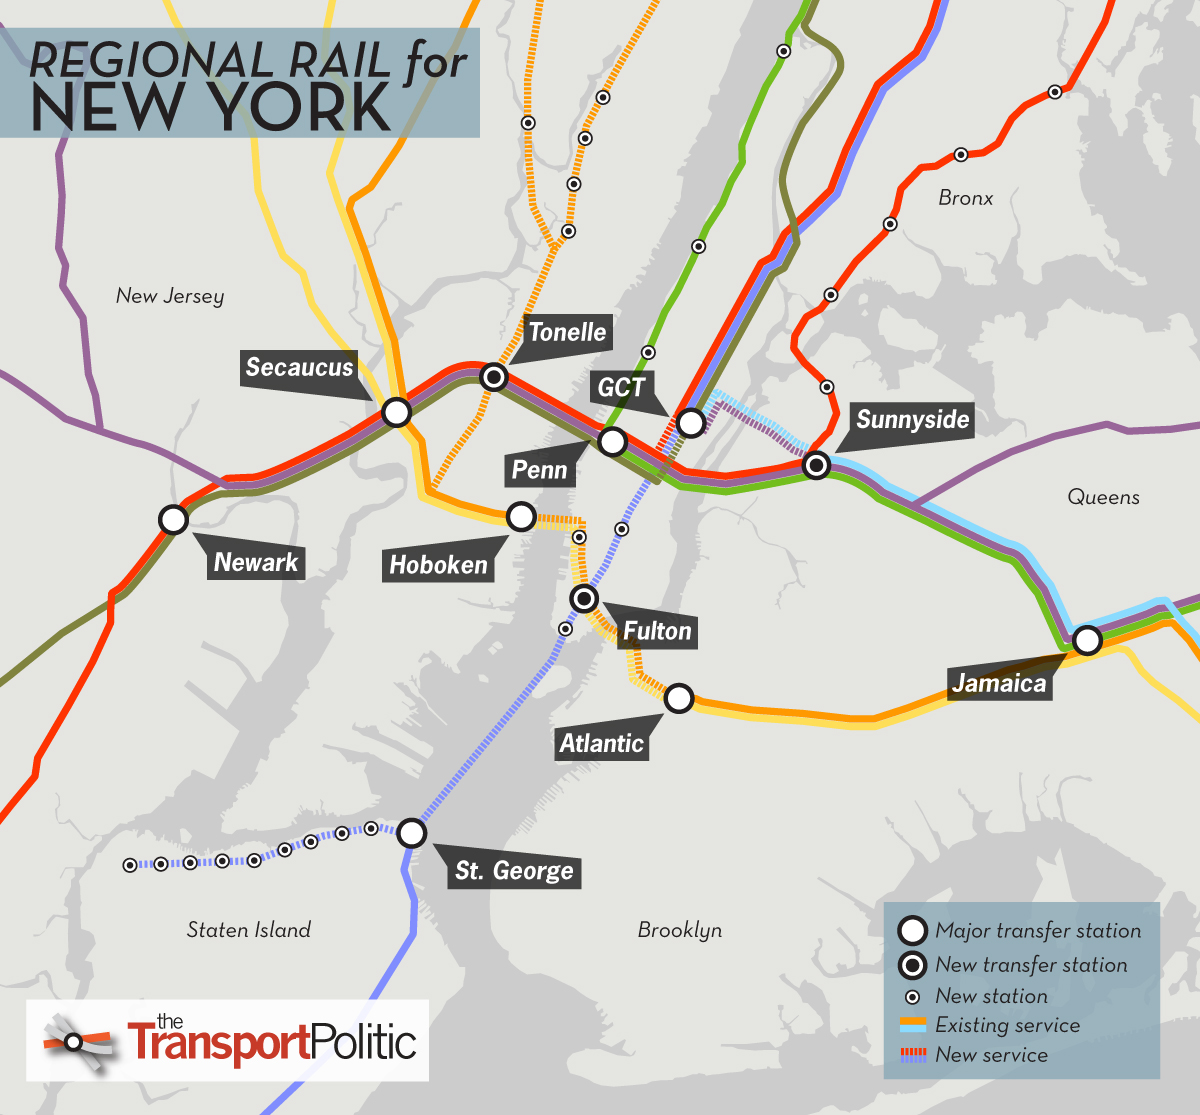 Penn Station Nyc Map Inside.Regional Rail For New York City Part Ii The Transport Politic